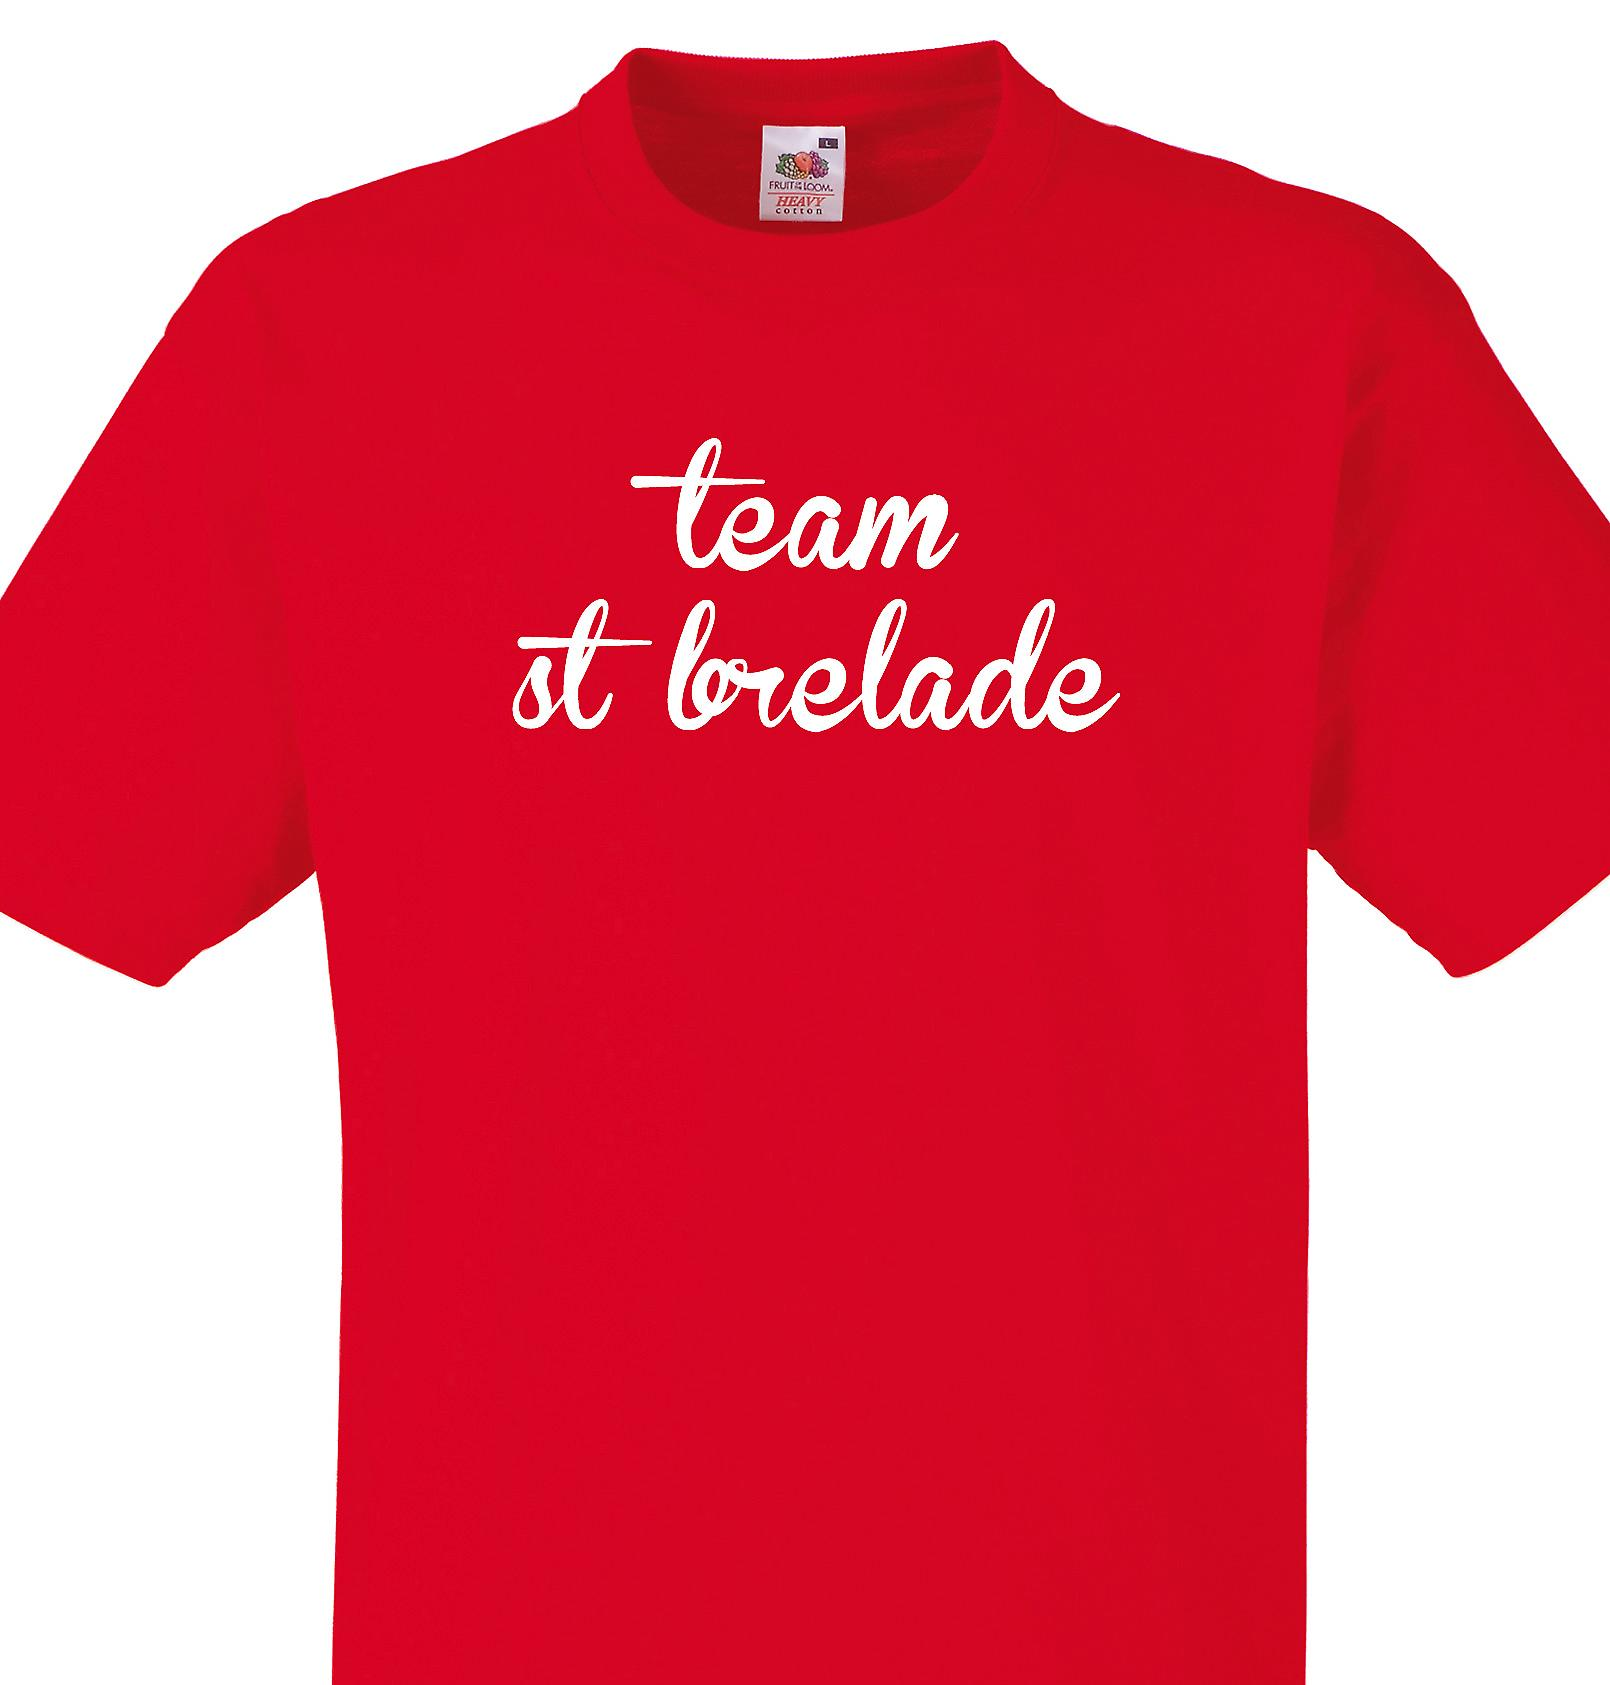 Team St brelade Red T shirt